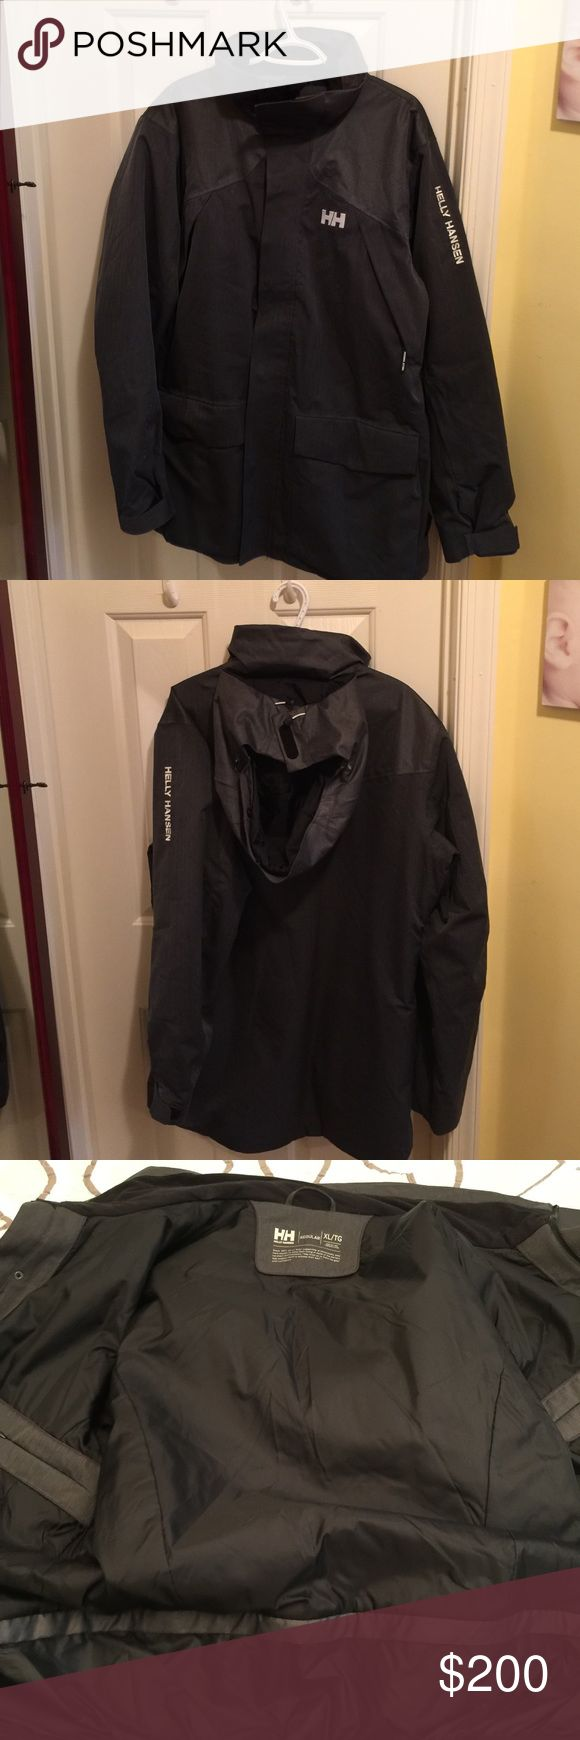 Helly Hansen Men's Helly Tech Performance Jacket Charcoal grey Helly Hansen jacket in great condition. Used for one winter with no wear and tear and no stains. Has fully taped seams for waterproof yet breathability ratings. Comes with hood and removable ski skirt. Helly Hansen Jackets & Coats Ski & Snowboard